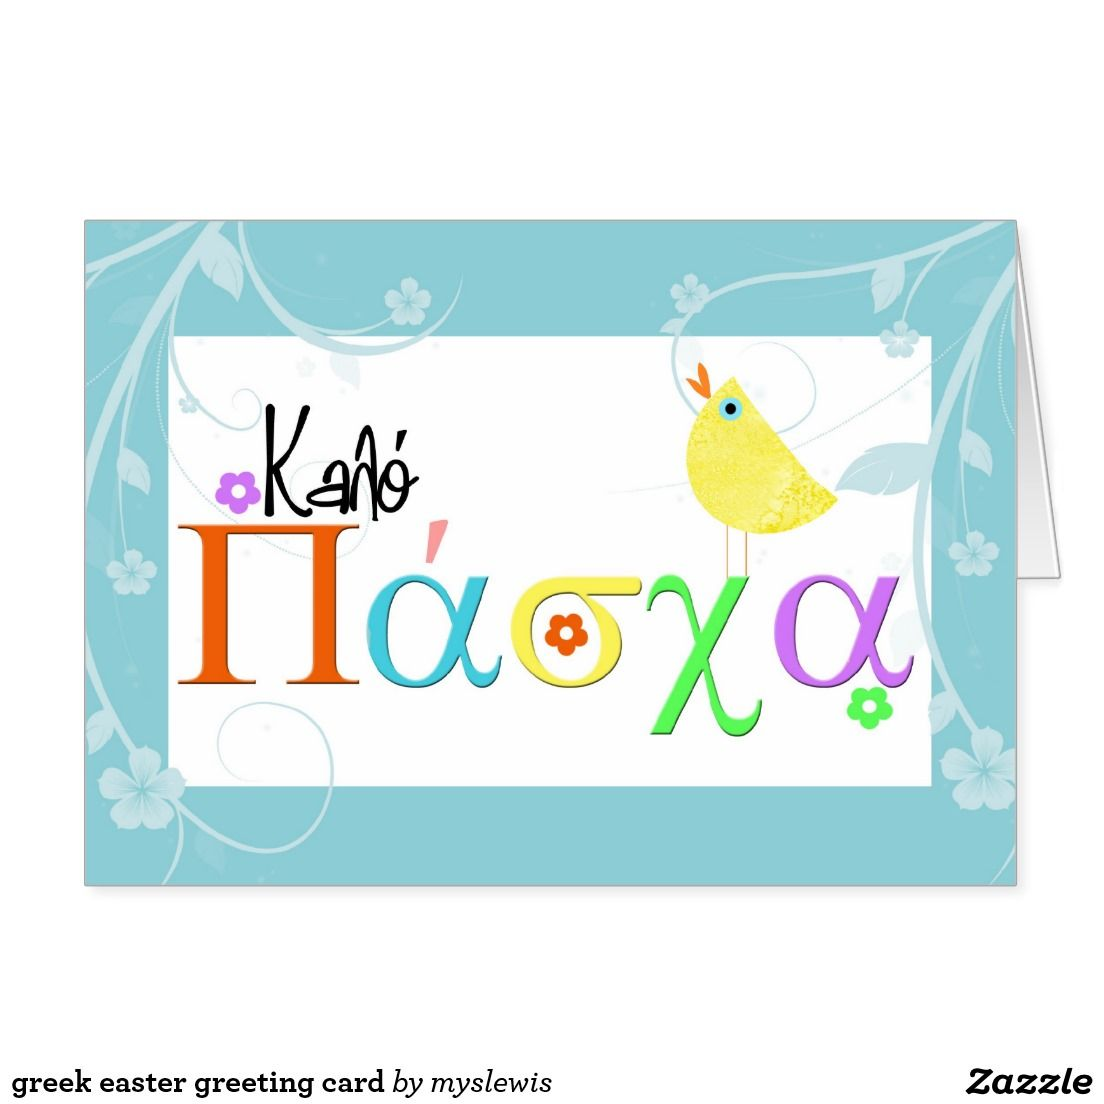 Greek Easter Greeting Card Greek Greetings Pinterest Greek